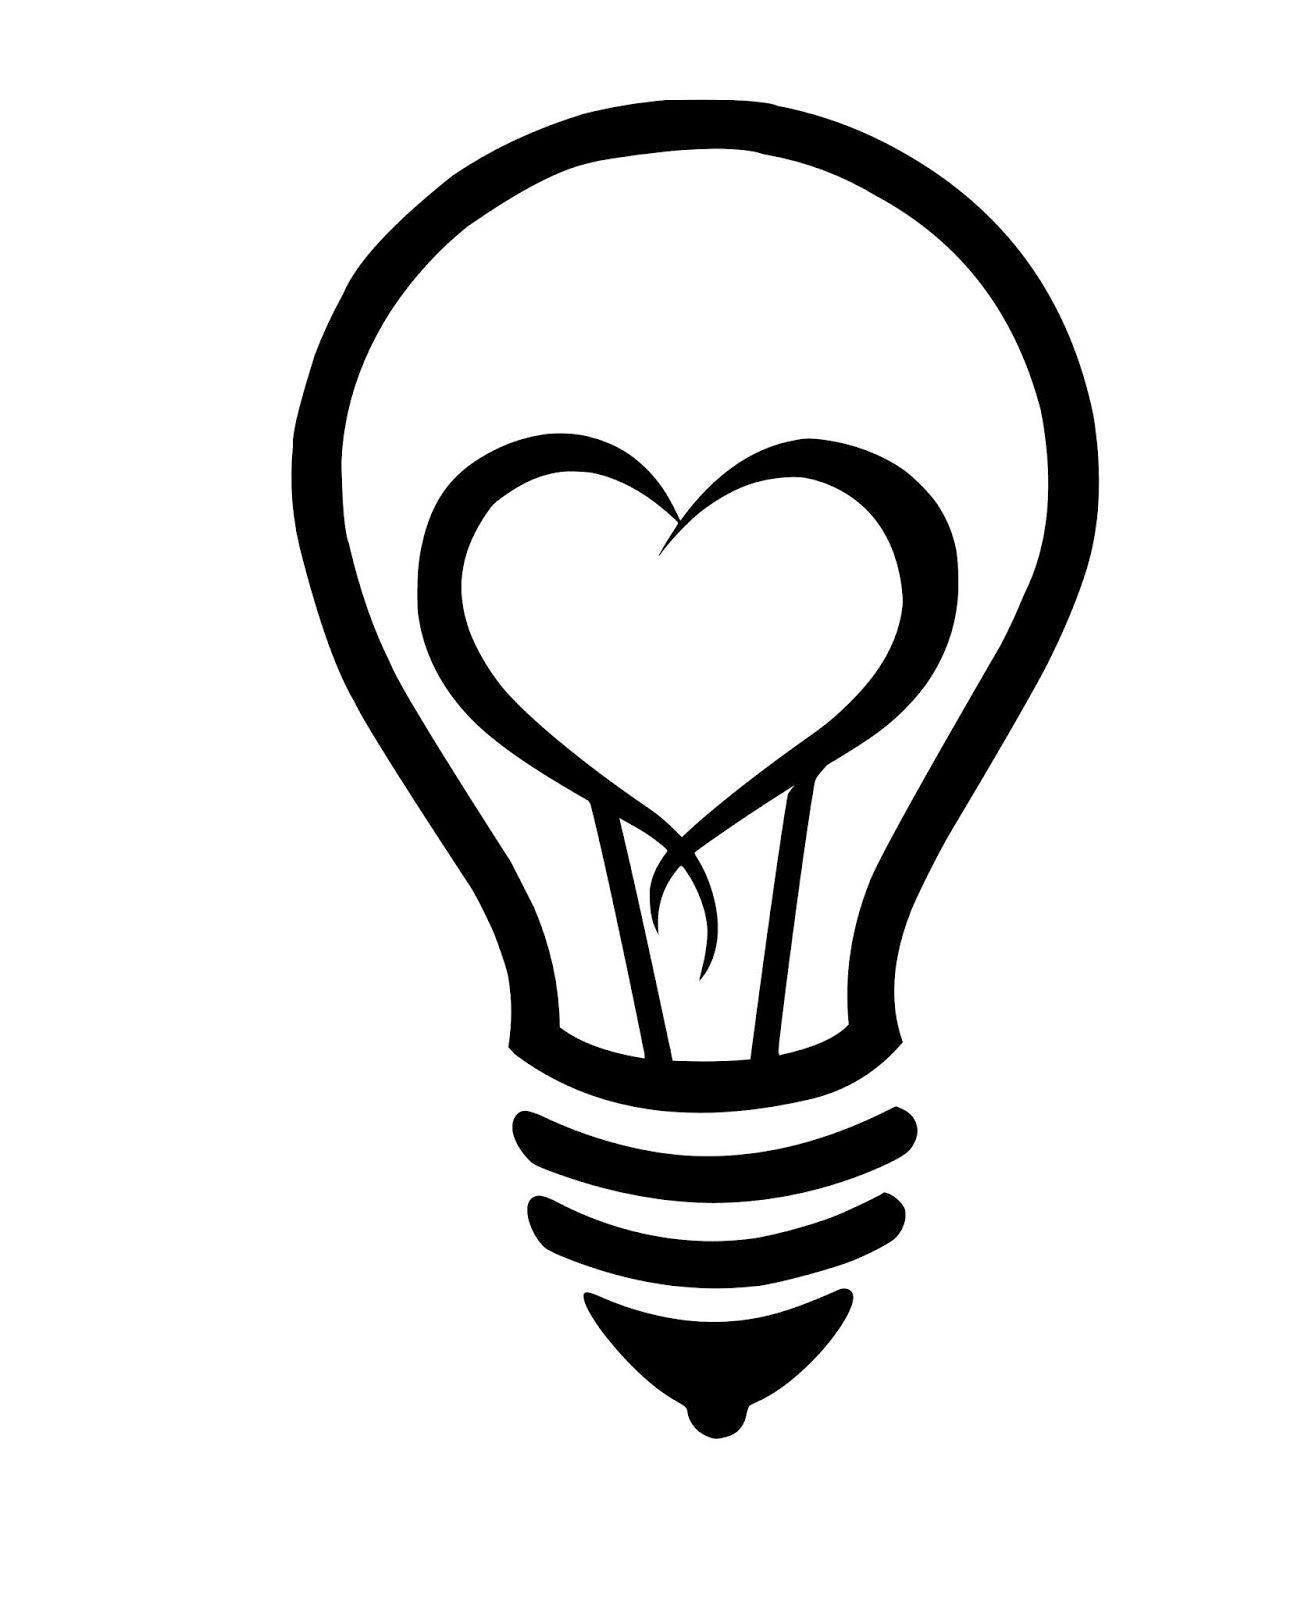 The Free High Resolution Photo Of Bulb Emotional